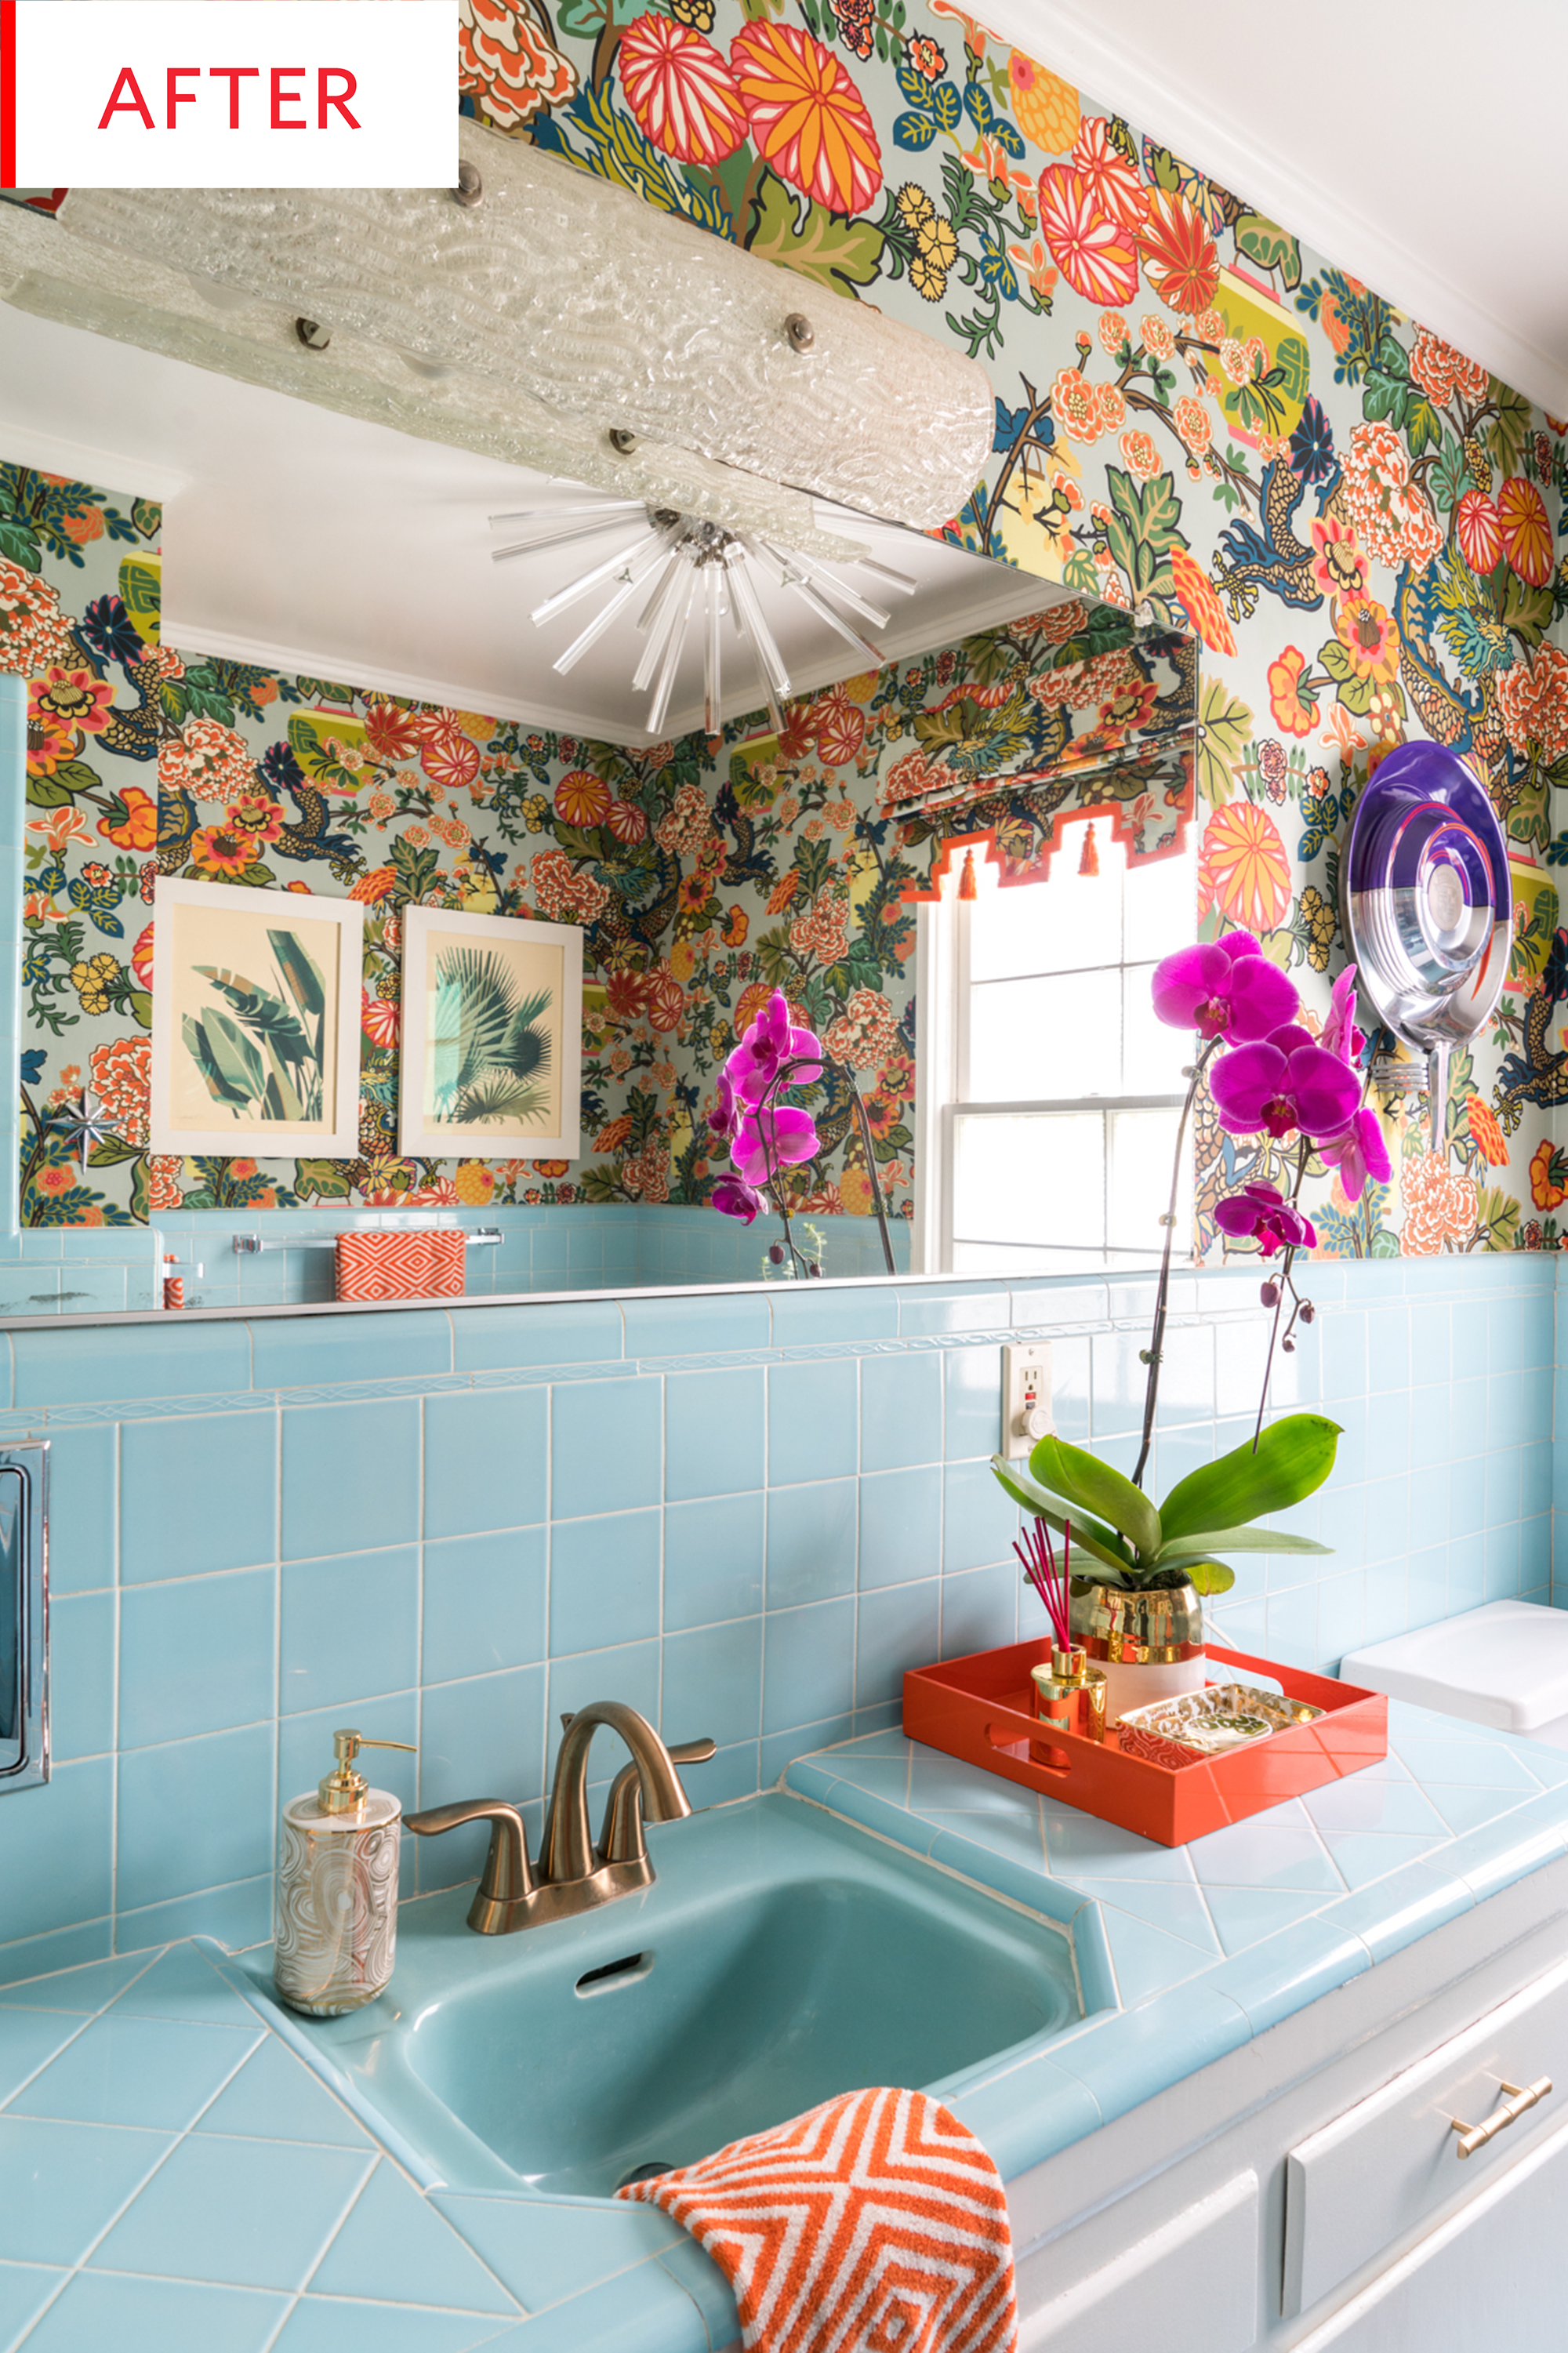 Before And After This Bathroom Keeps Its Original Beautiful